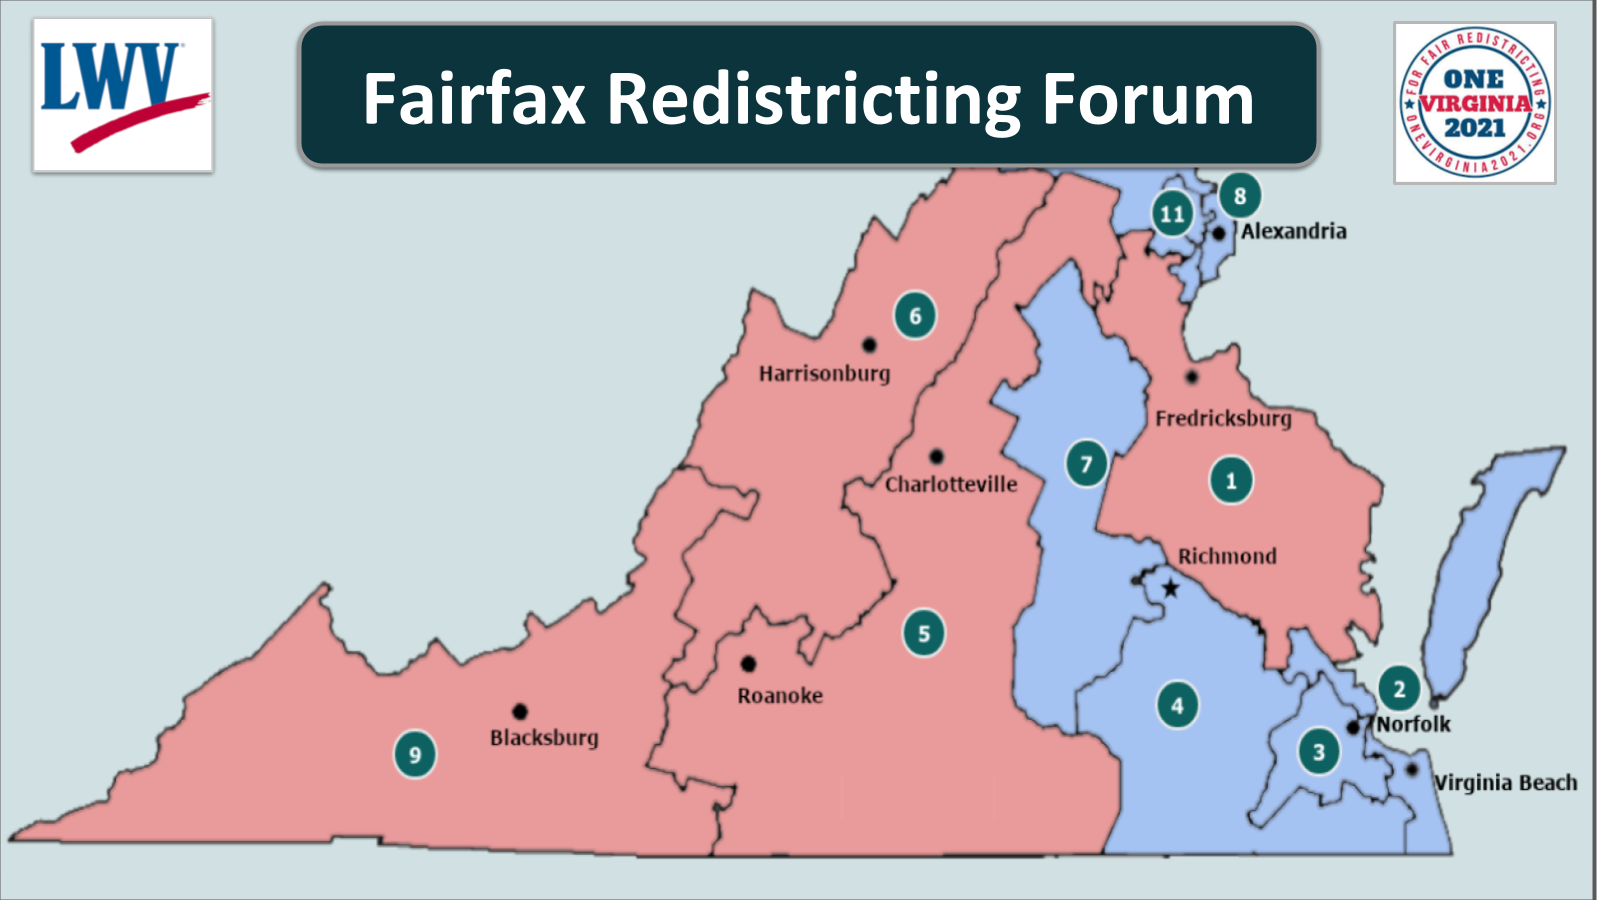 Fairfax Redistricting Forum - 11/17/19 1